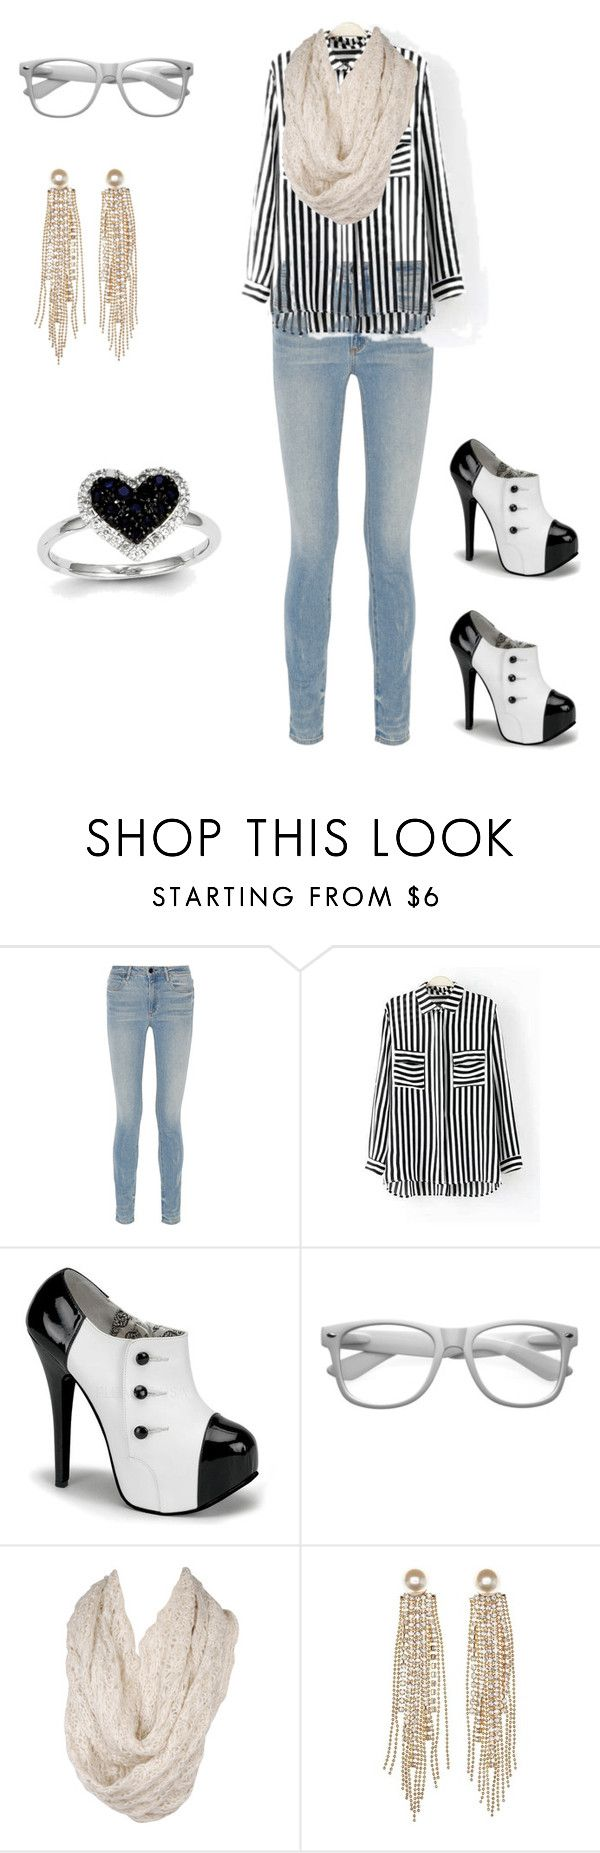 """""""dress for succes"""" by keoshagrant on Polyvore featuring Alexander Wang, Retrò, Forever 21, Charlotte Russe, Kevin Jewelers, women's clothing, women's fashion, women, female and woman"""